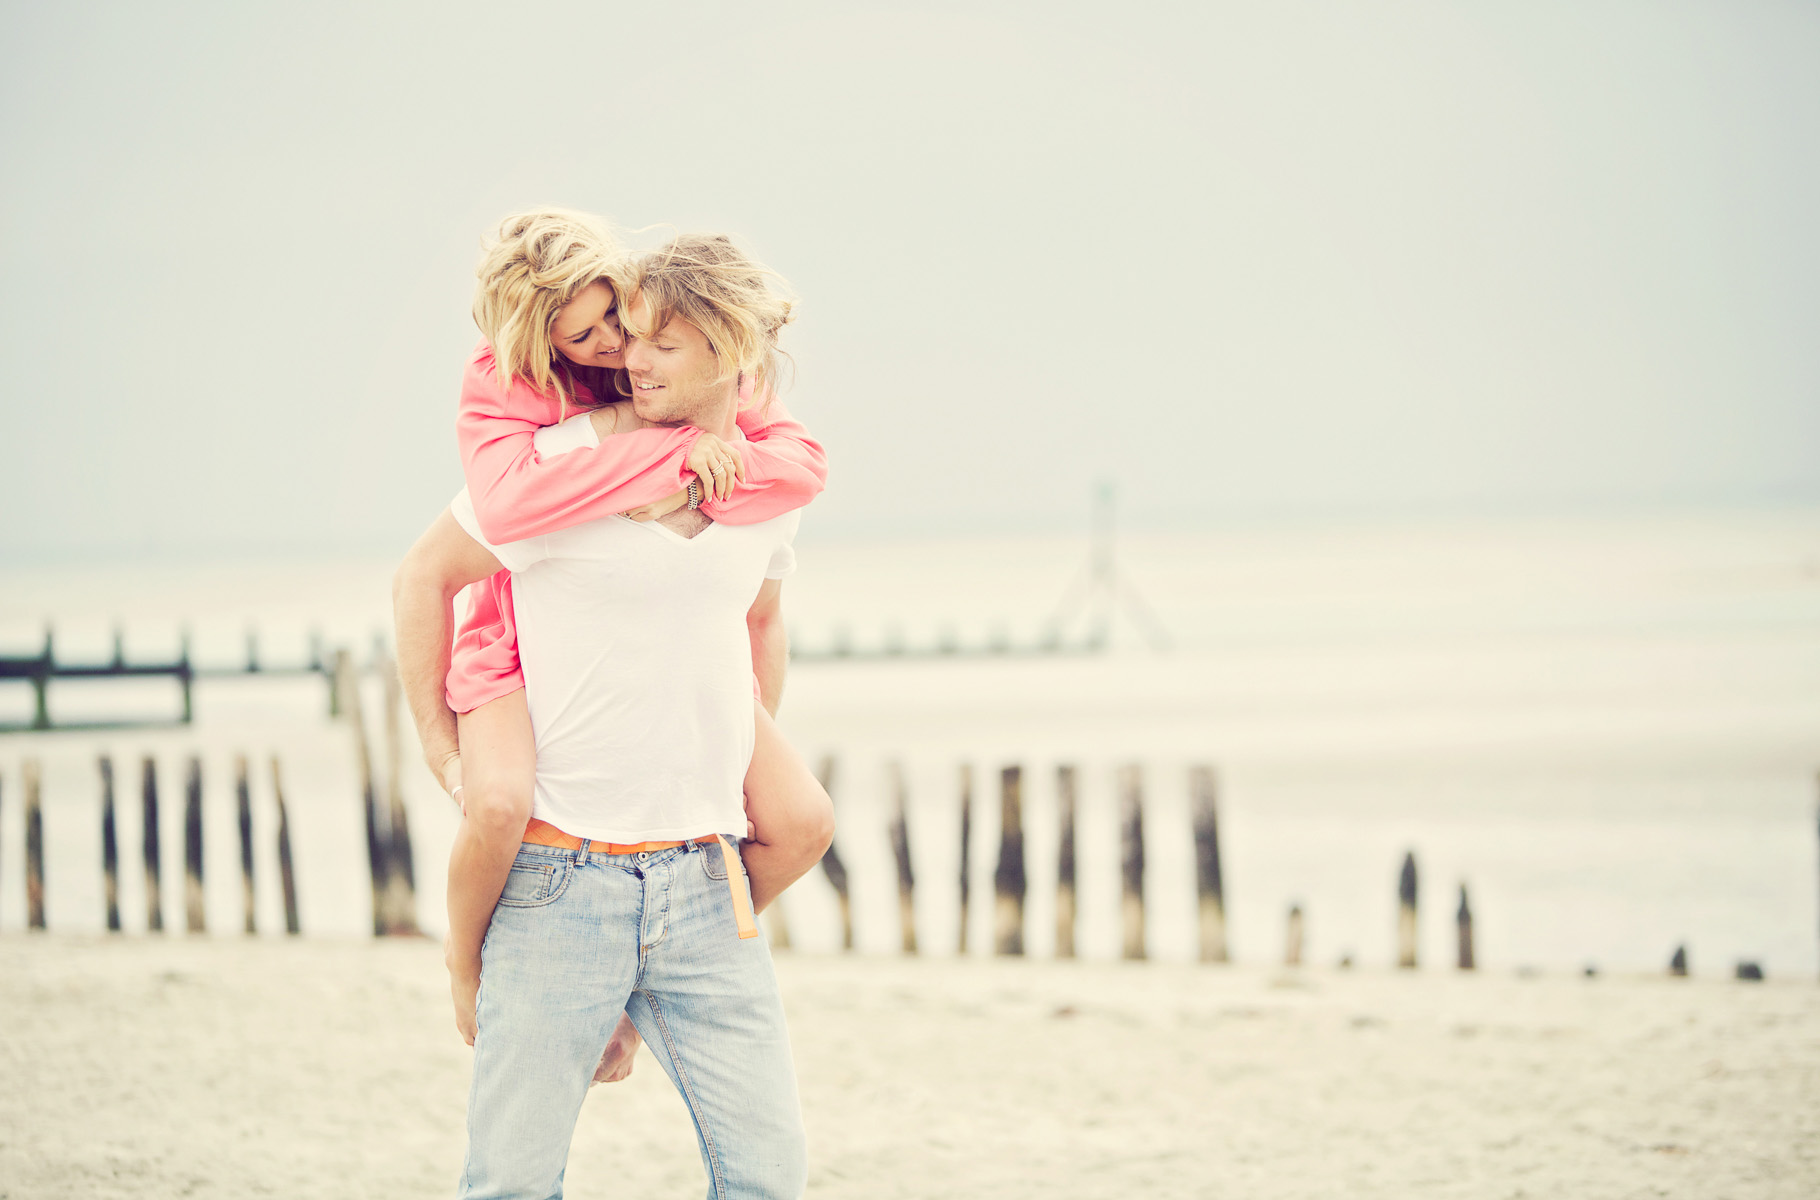 Engagement-Love-Photographer-Winchester-Hampshire-23